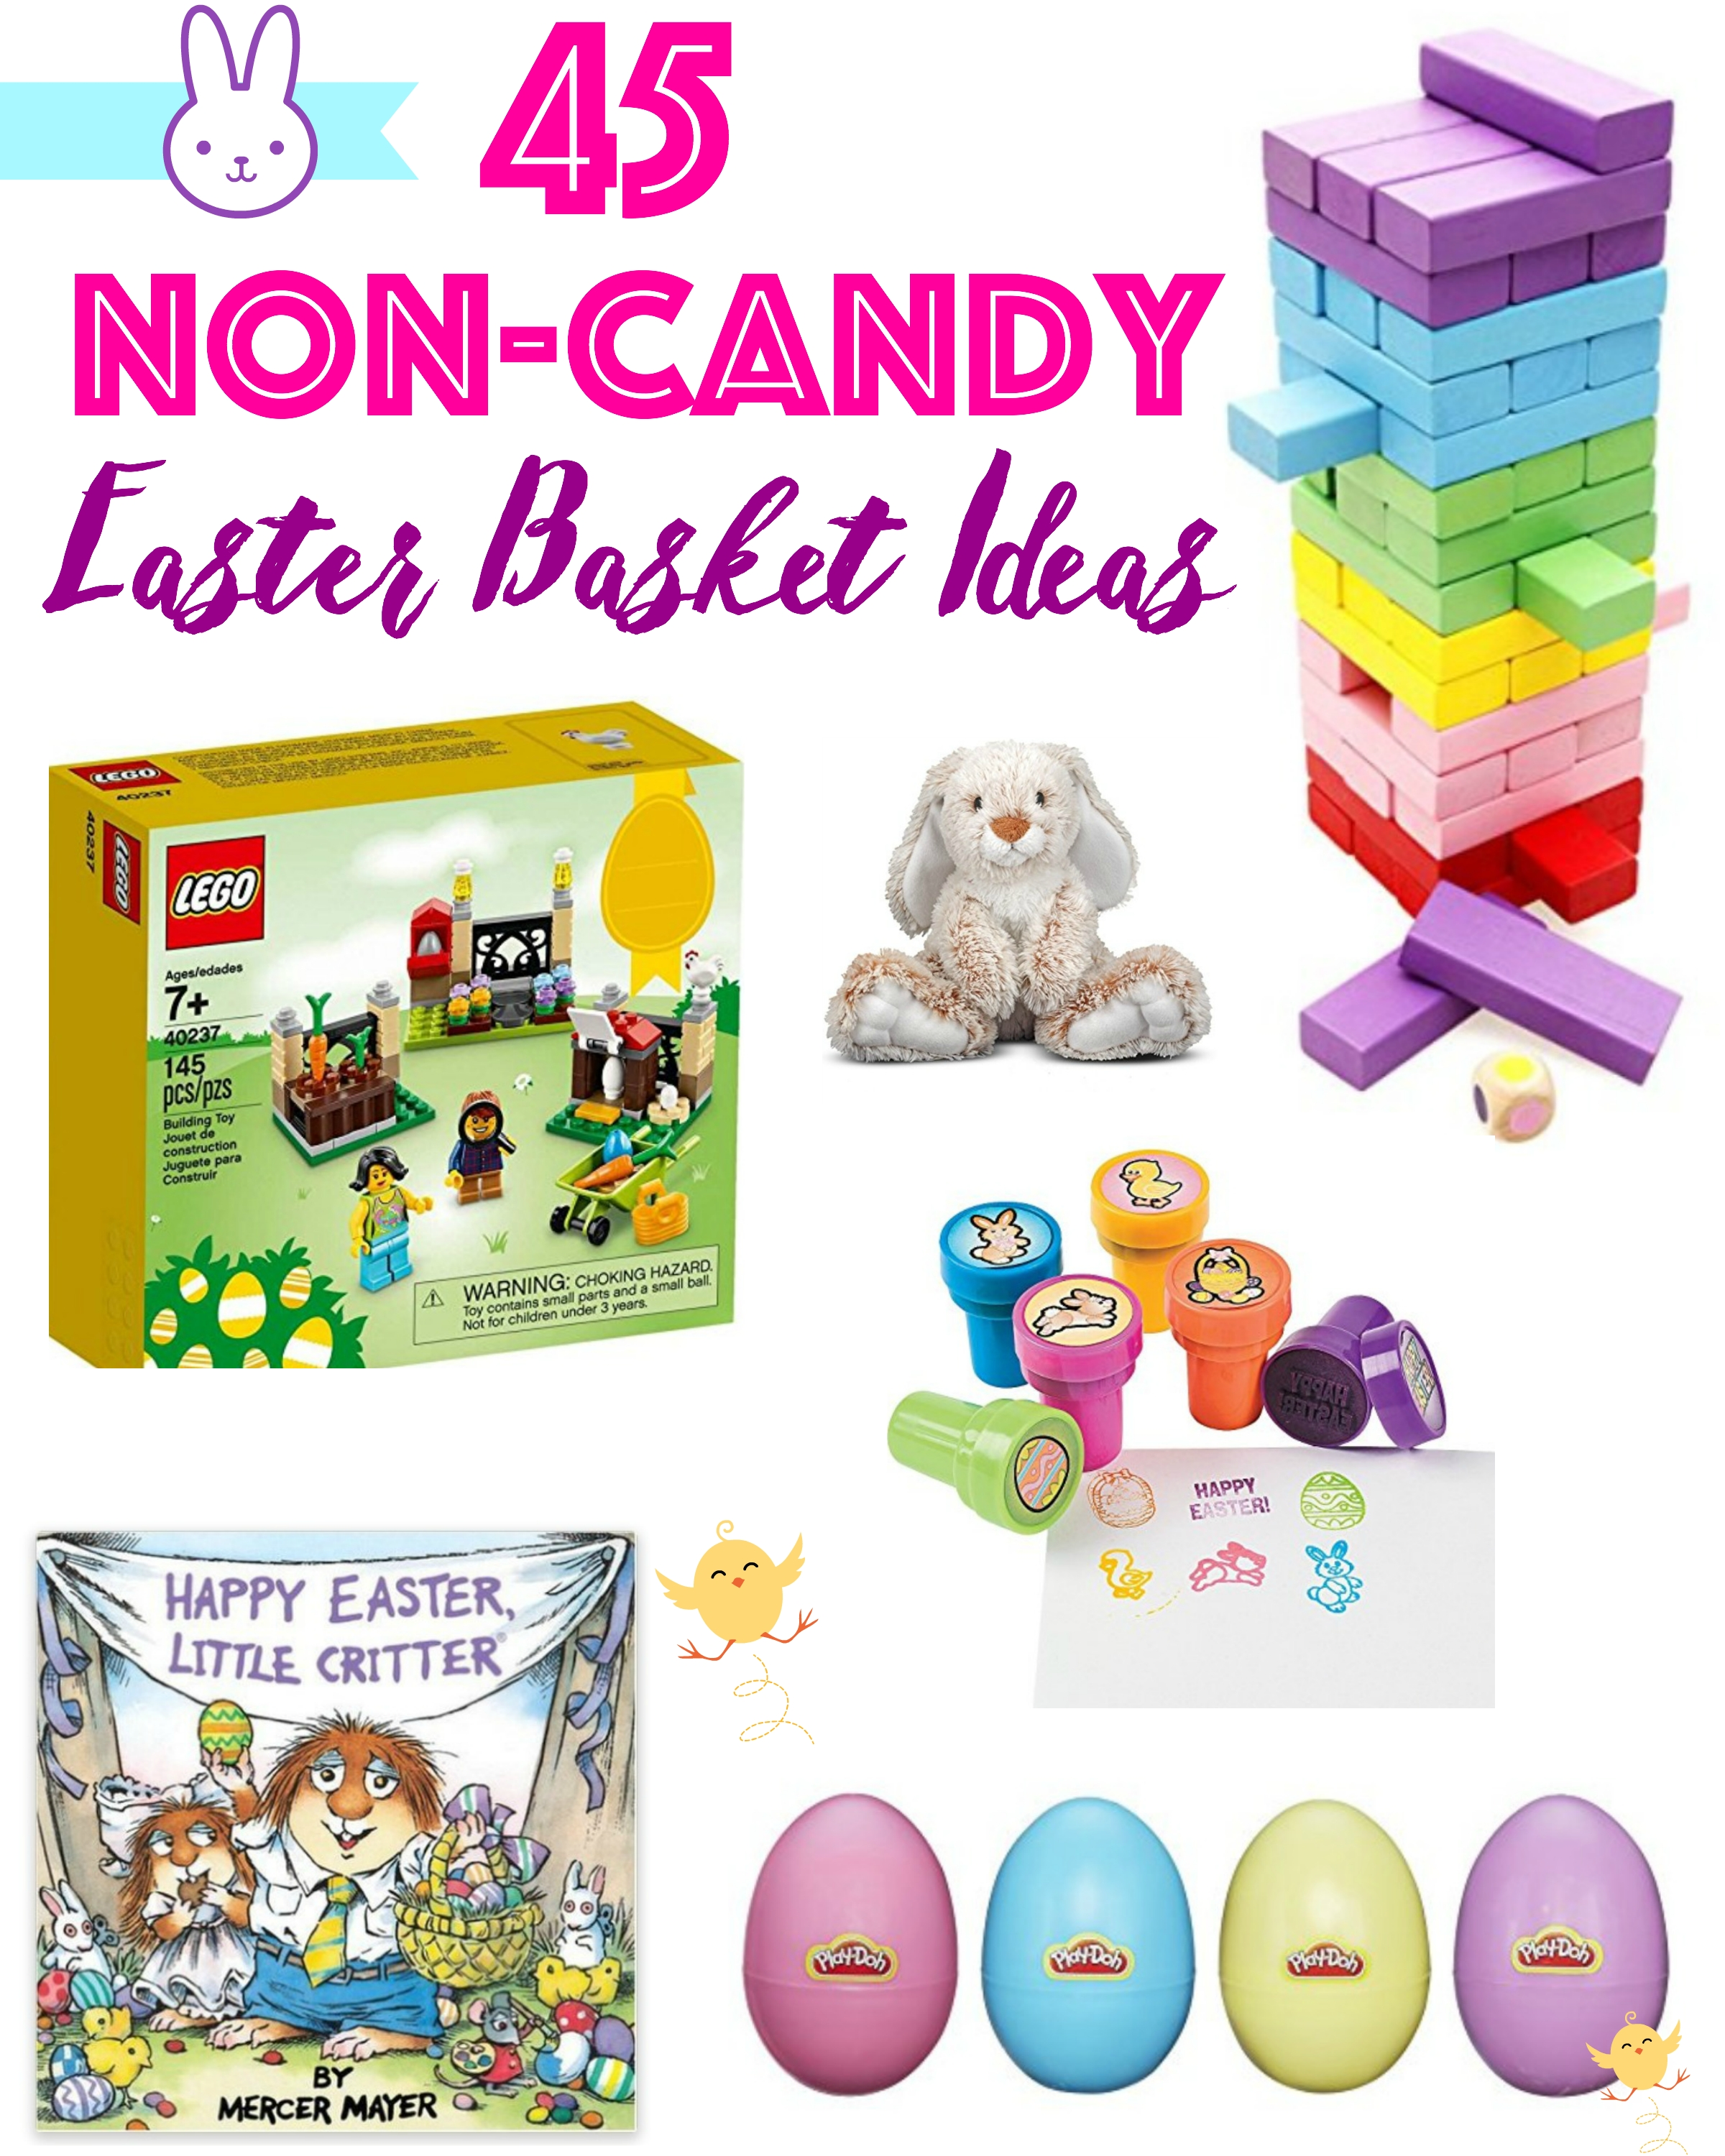 10 Cute Non Candy Easter Basket Ideas 45 non candy easter basket ideas for girls boys simply being mommy 1 2020